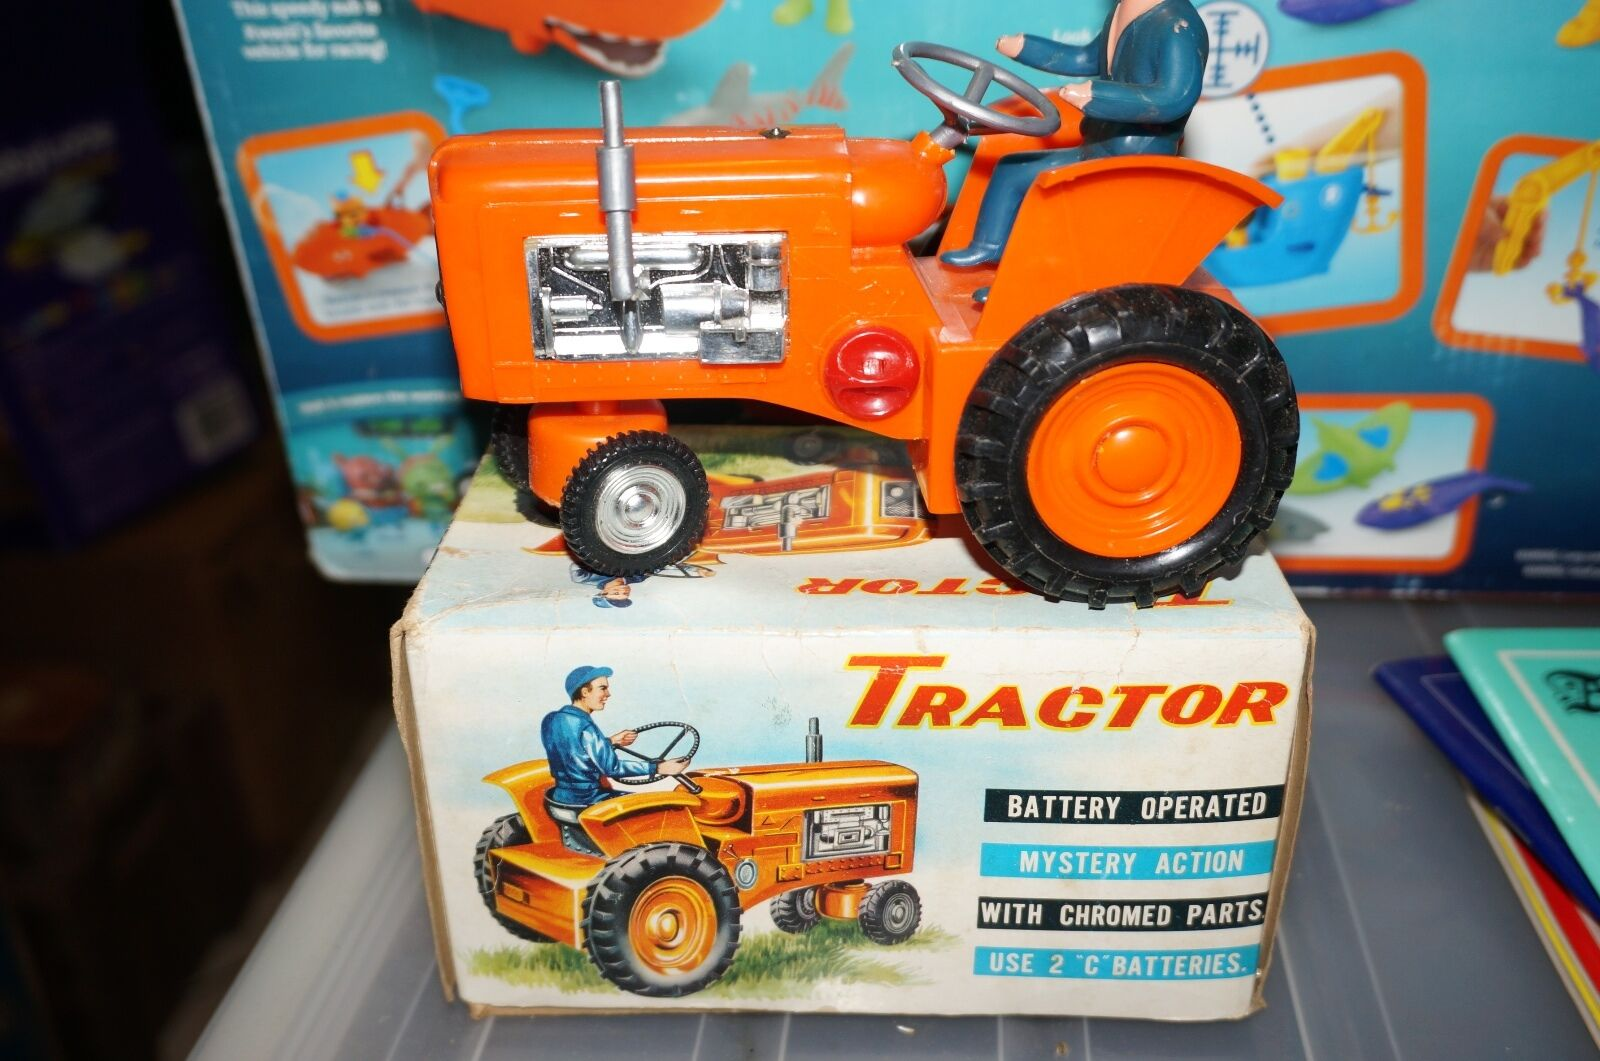 Toy Tractor made in Hong Kong by MIC takes 2 x C size batteries